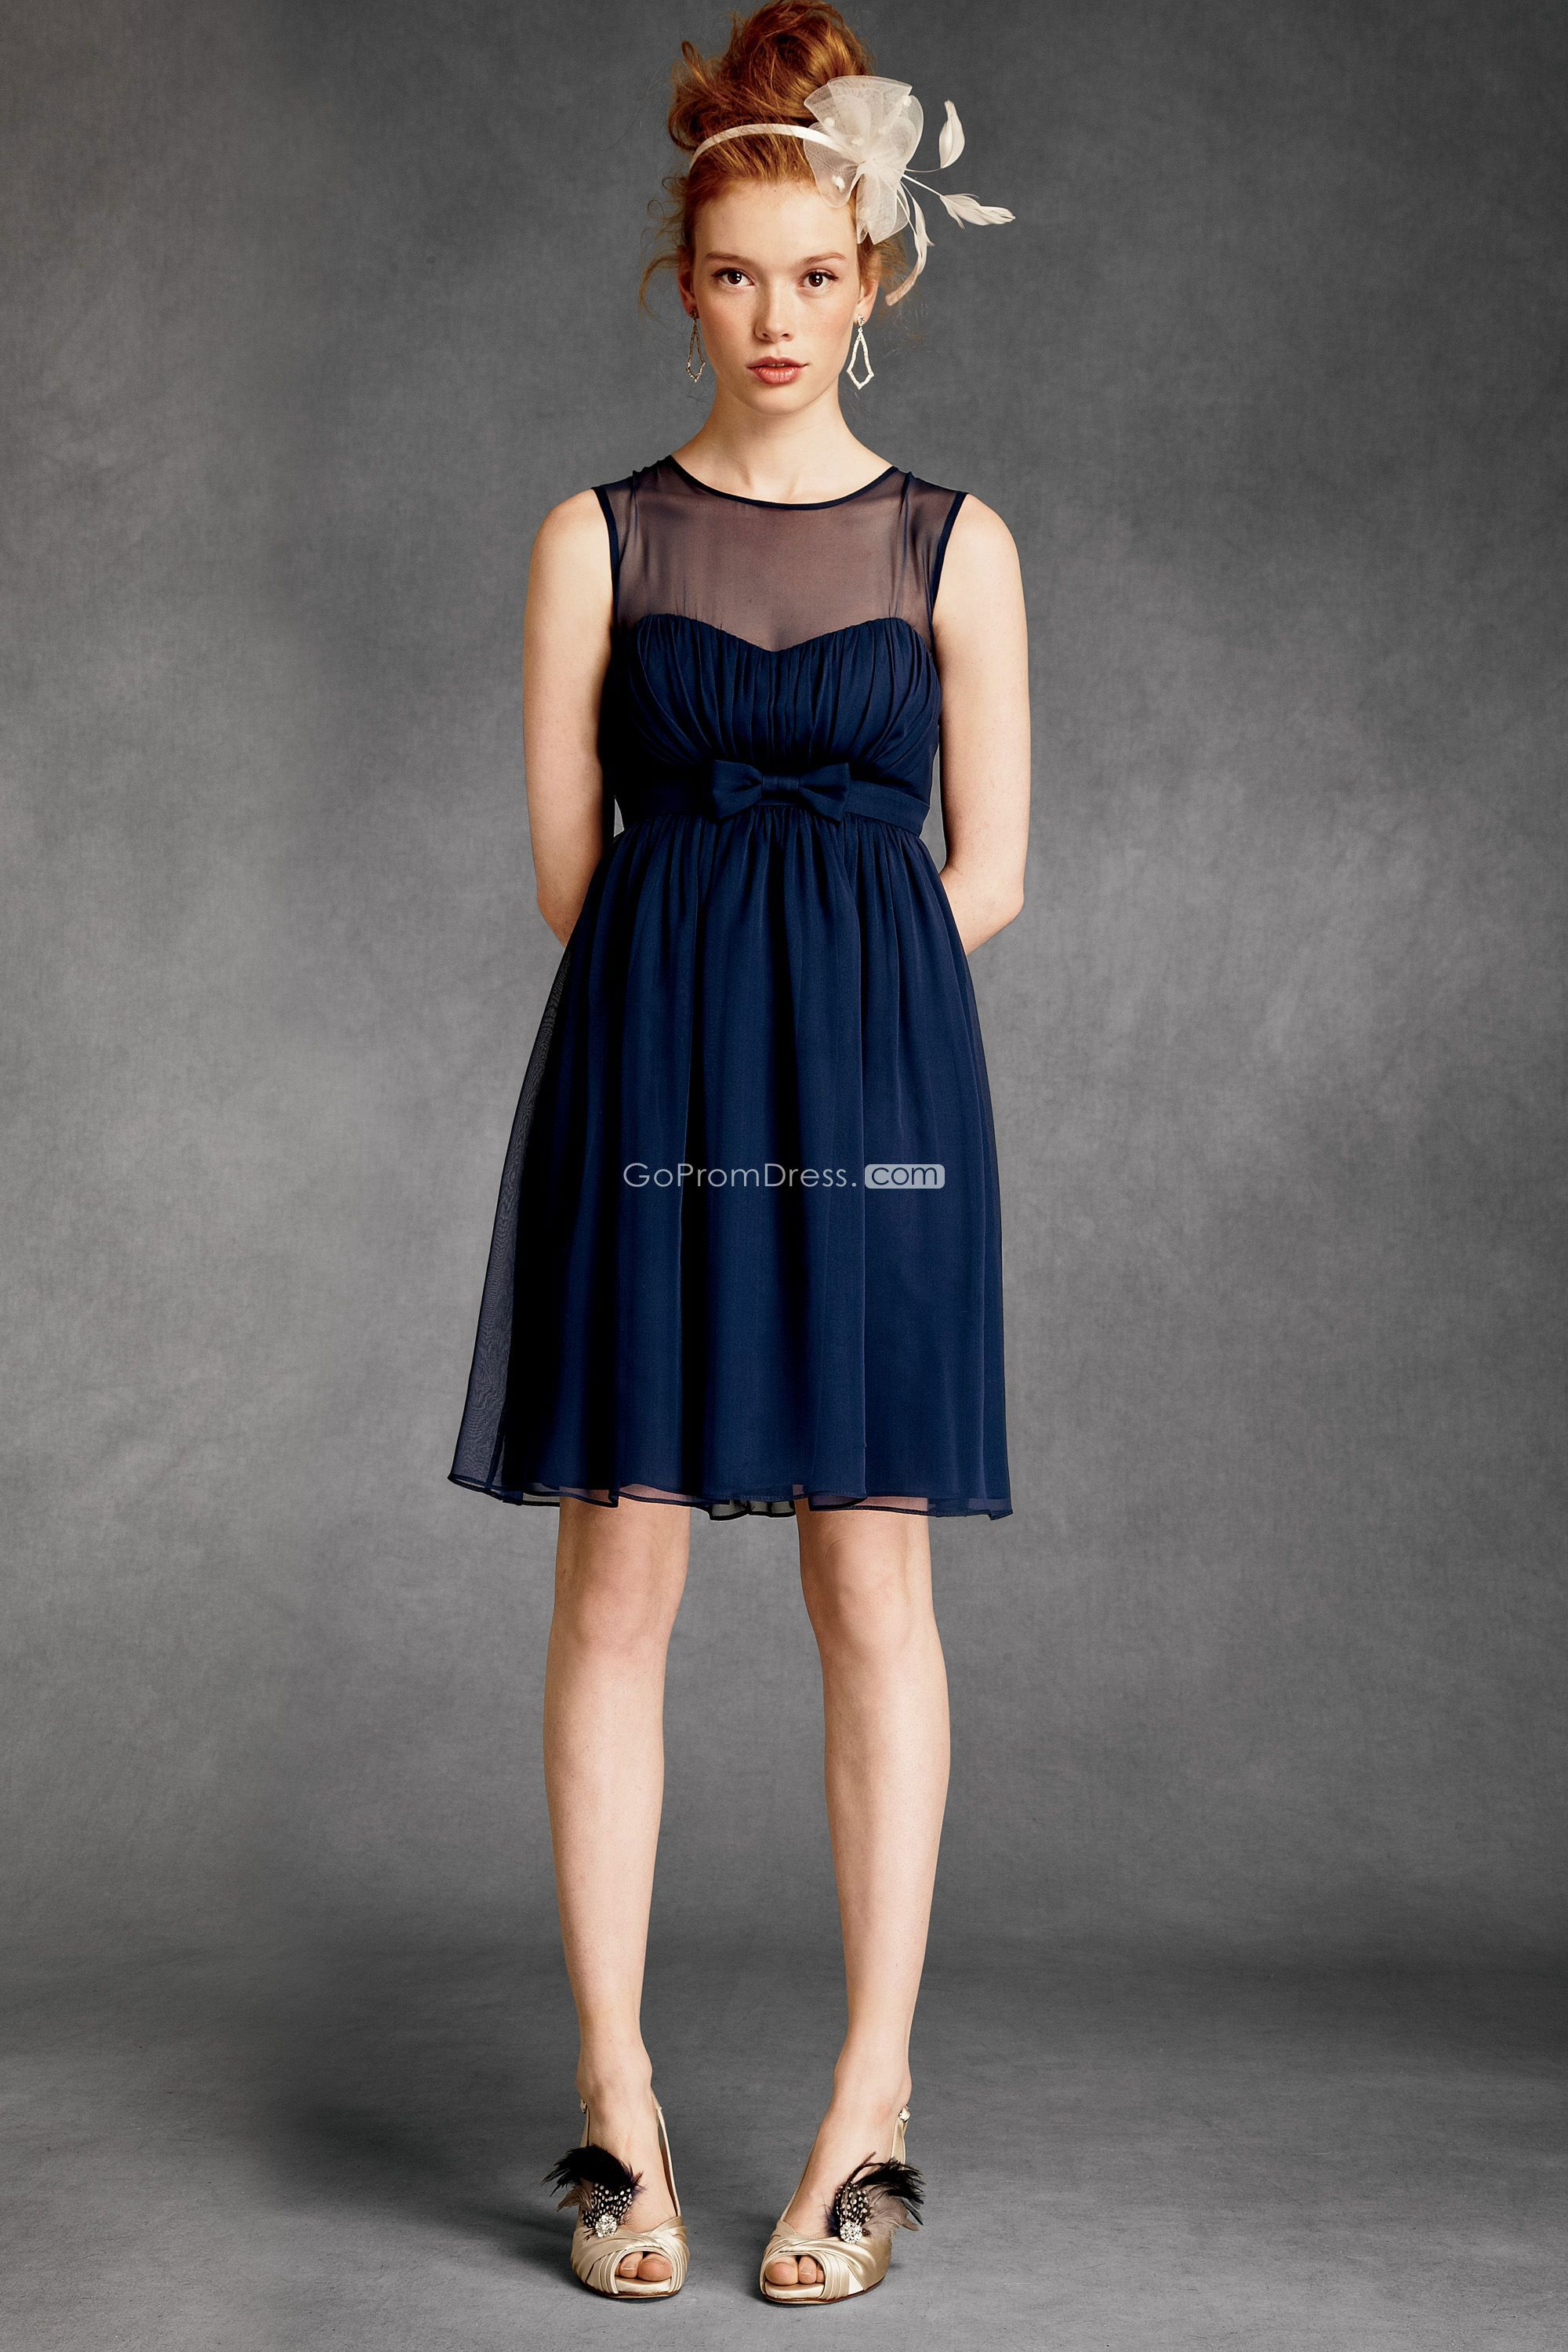 Dark blue wedding dress  Chiffon Boat Neck With Bowknot Kneelength Bridesmaid Dress